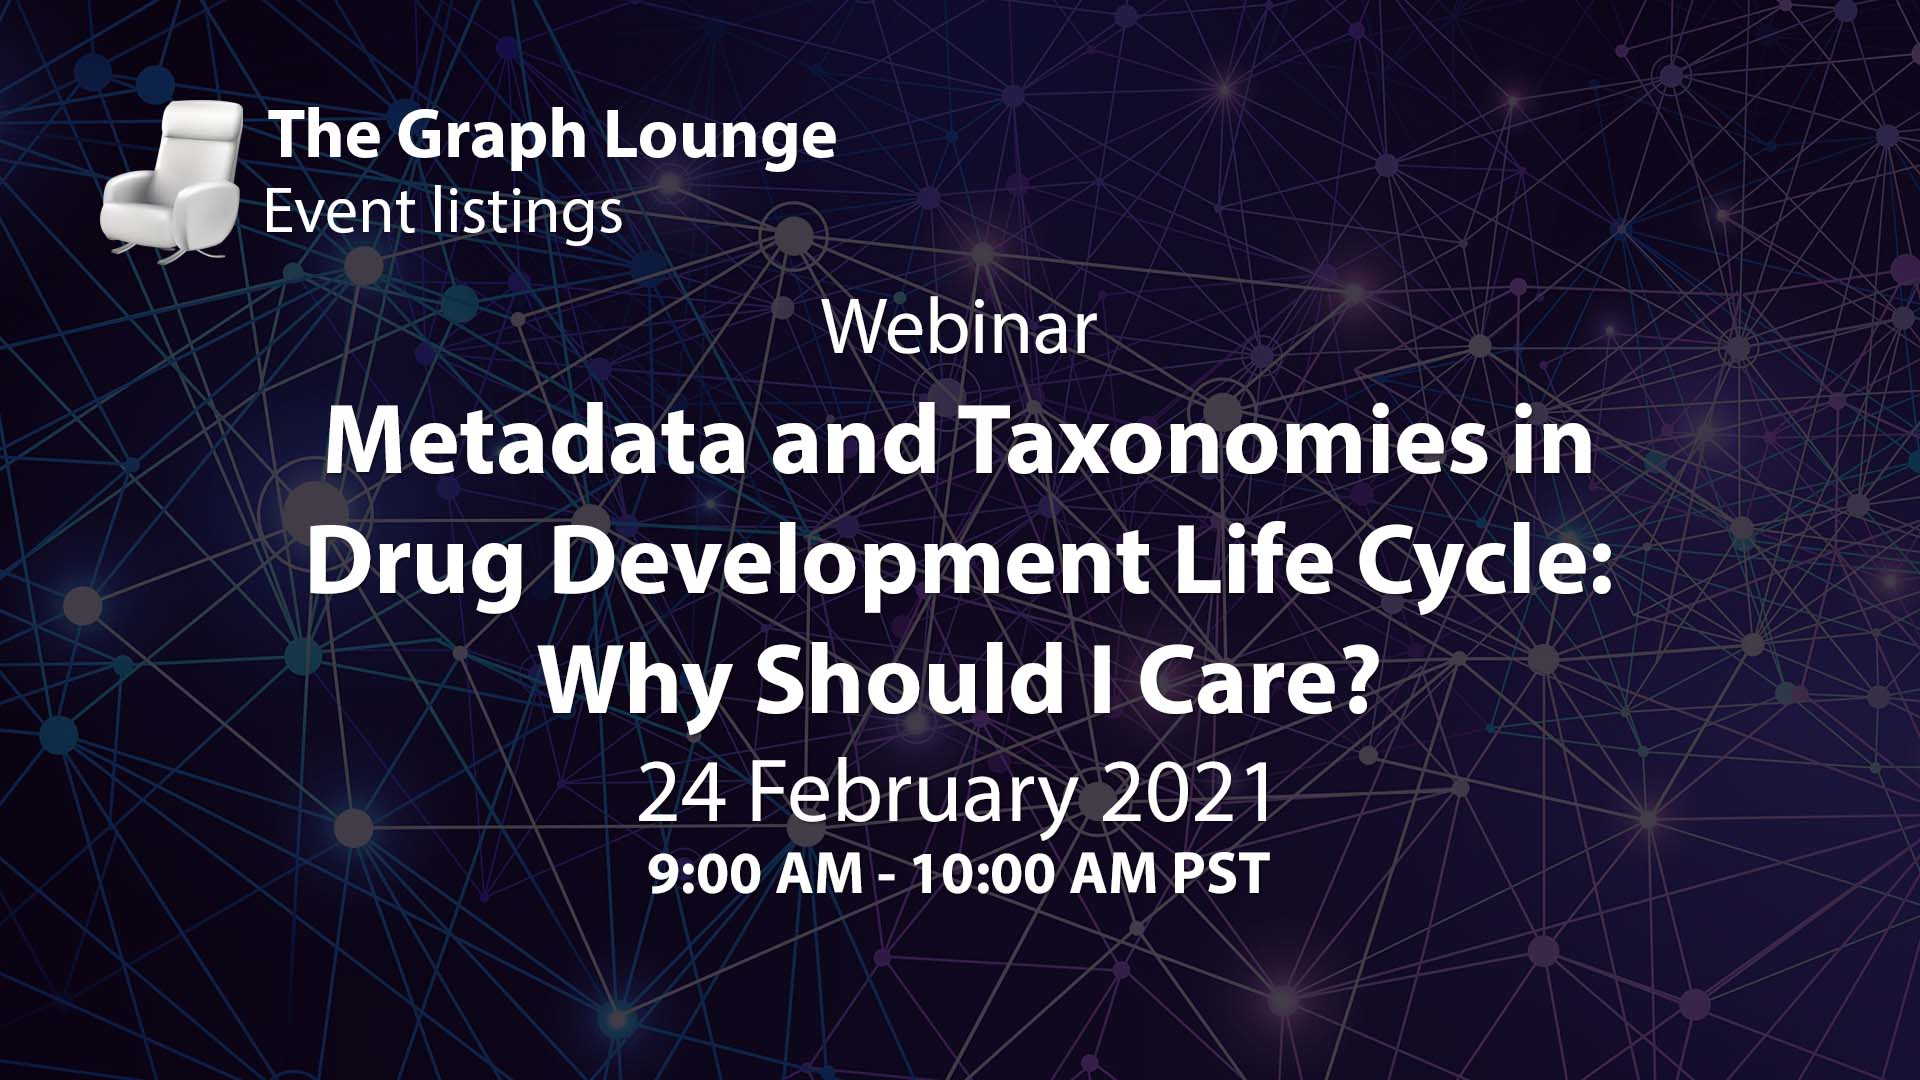 Metadata and Taxonomies in Drug Development Life Cycle: Why Should I Care?